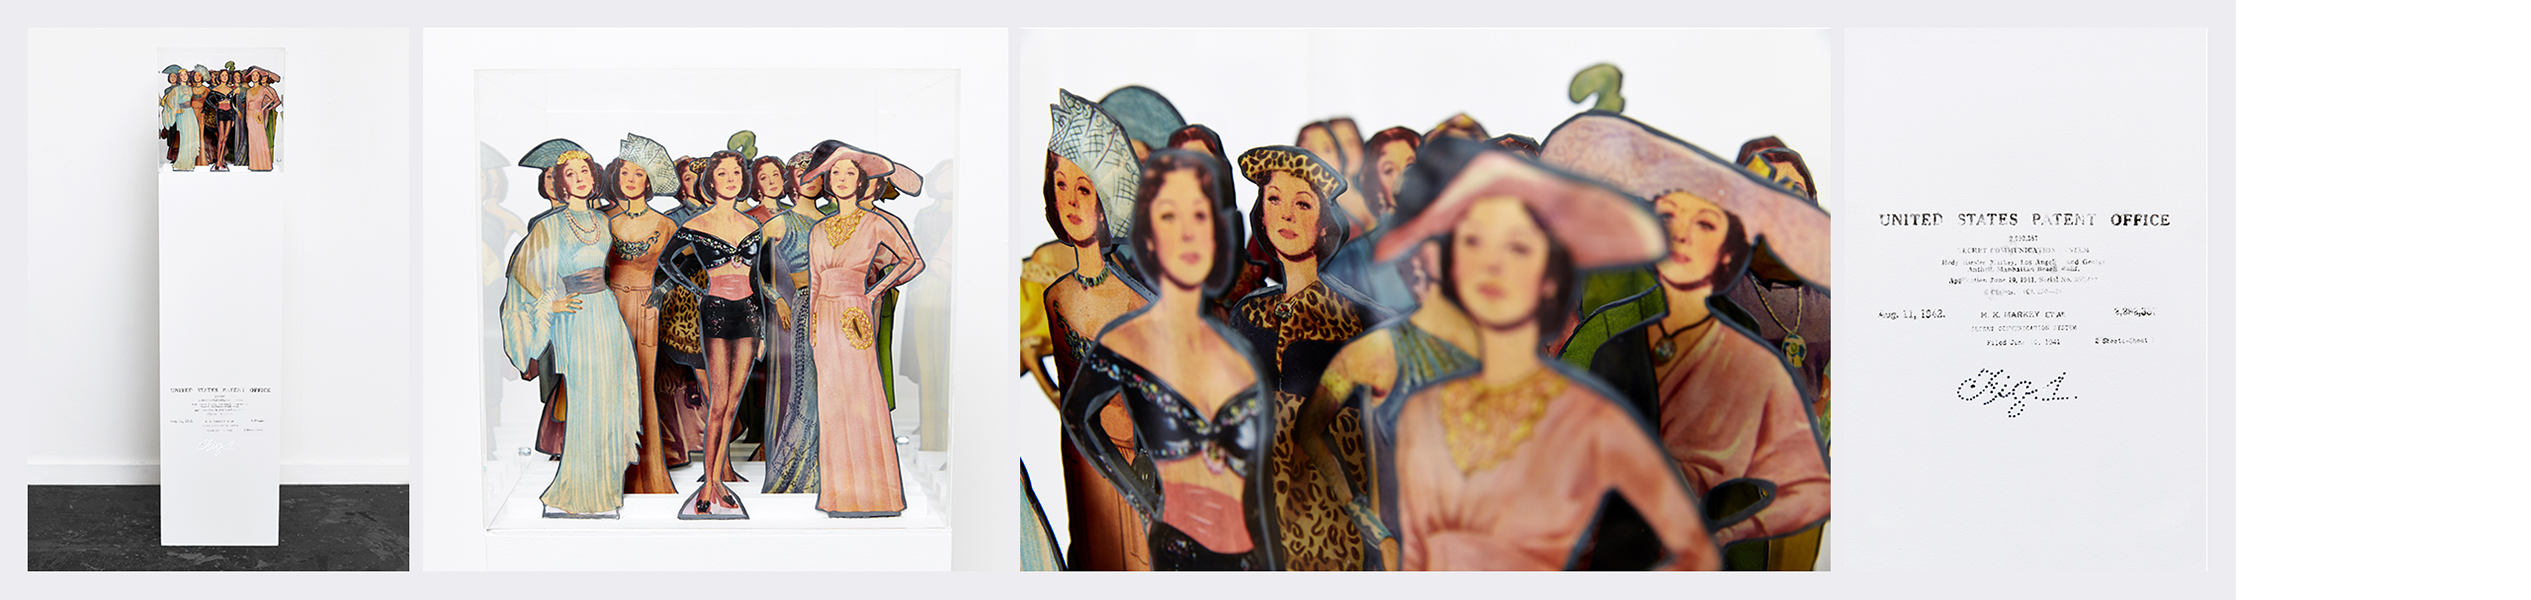 Figure 1 (2014) - 31cm (d) x 31cm (w) x 98cm (h) Original 1942 Hedy Lamarr paper dolls / wooden plinth / Mp3 player / LED / Perspex box / mini speakers. Audio; manipulated extracts 3.12